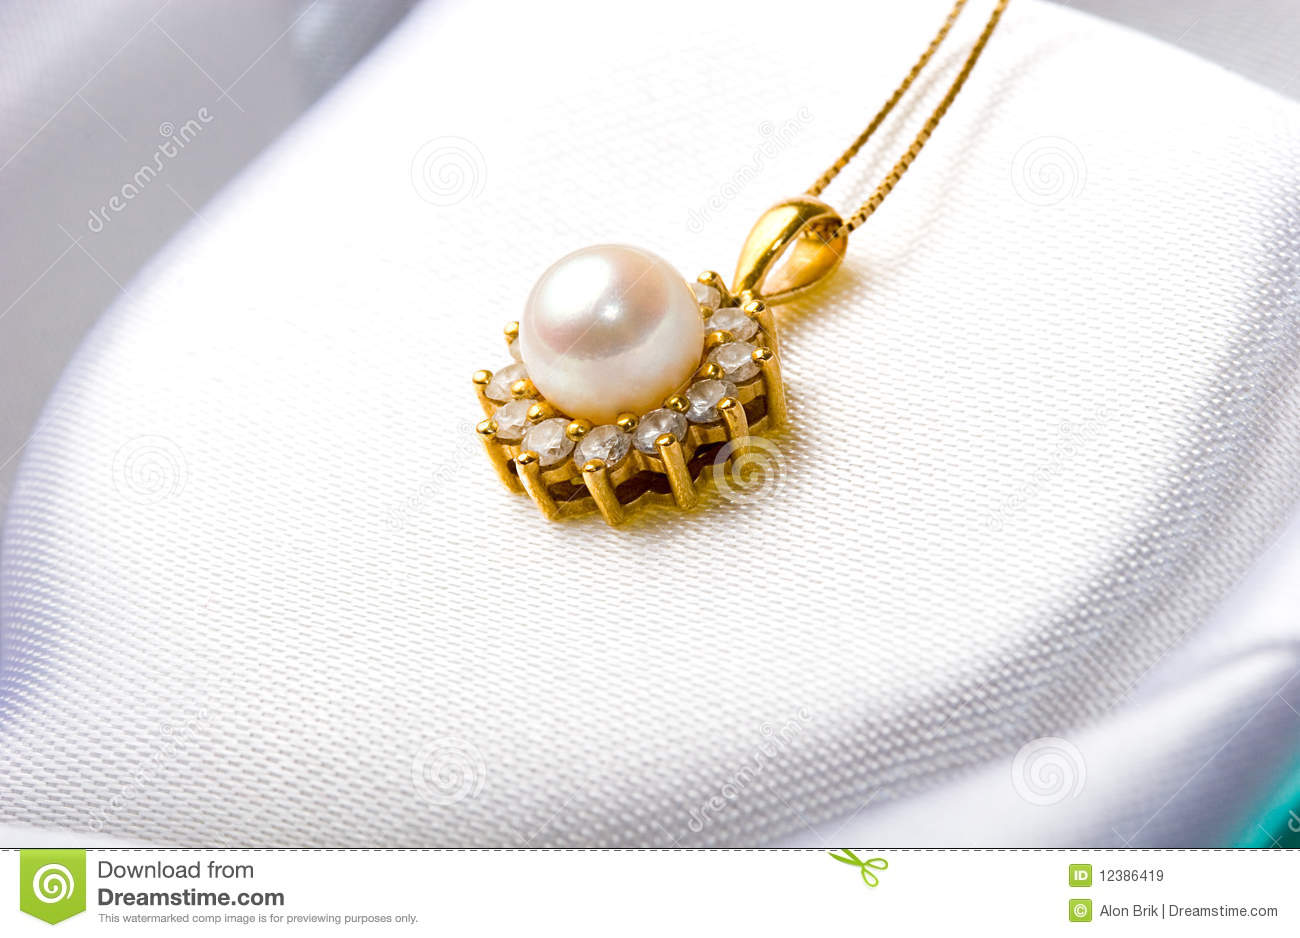 gold patriotism gold jewellery business plan pertain